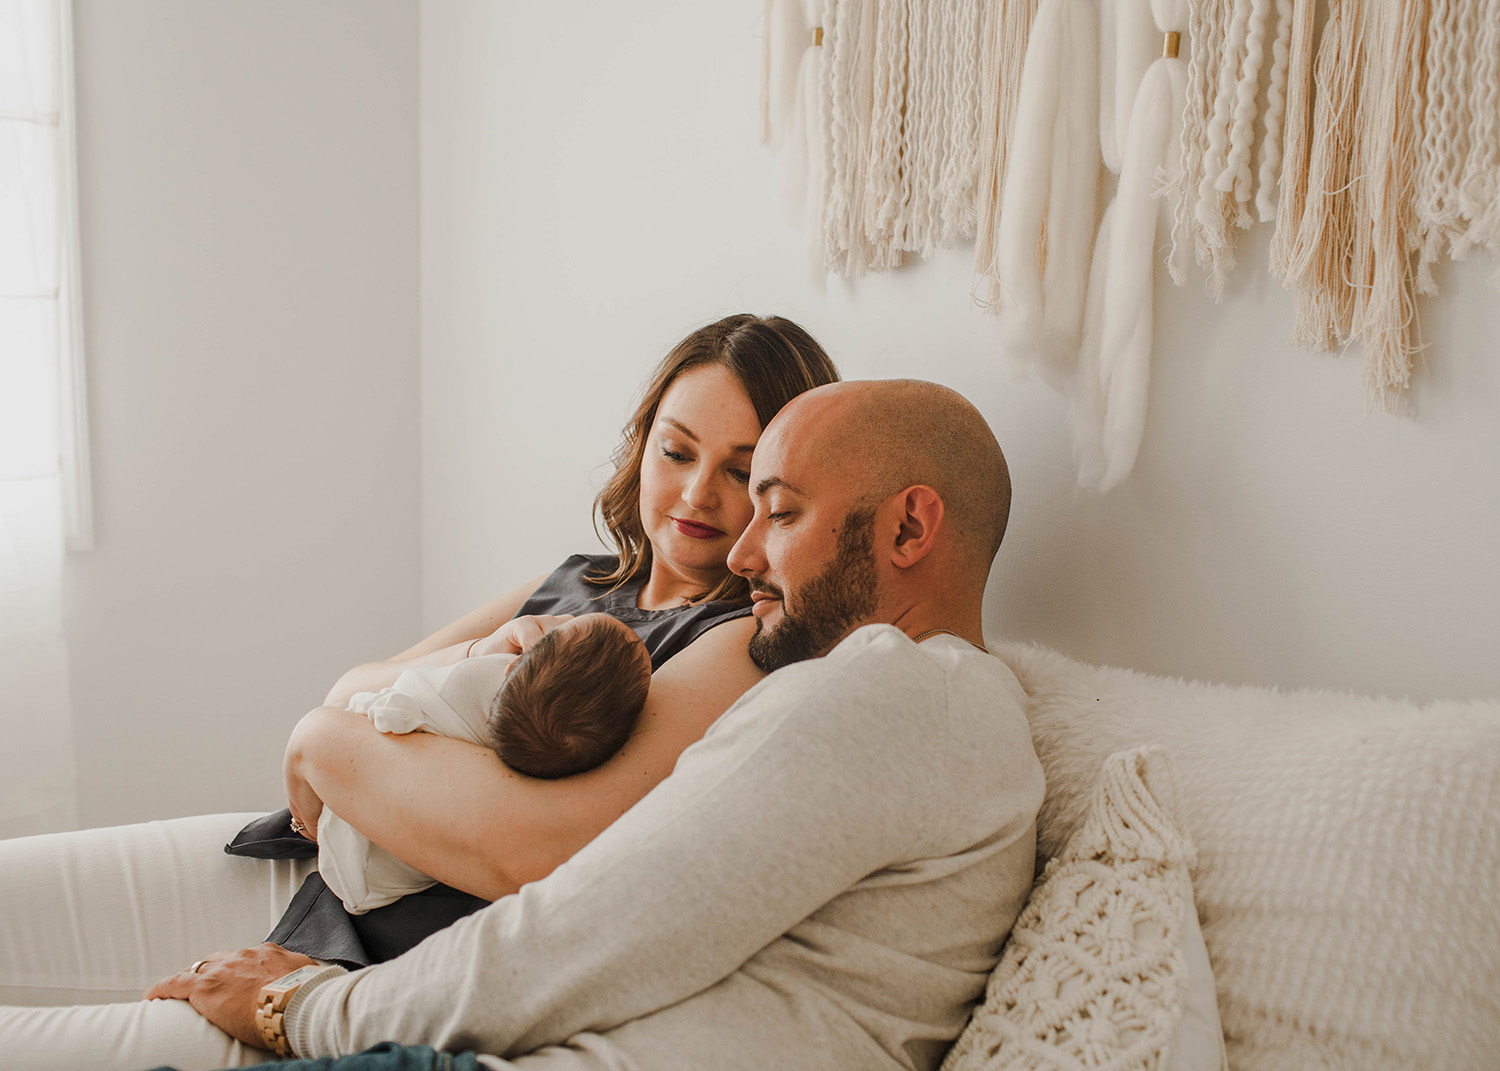 Chelsey-Hill-newborn-photography-breakout-7